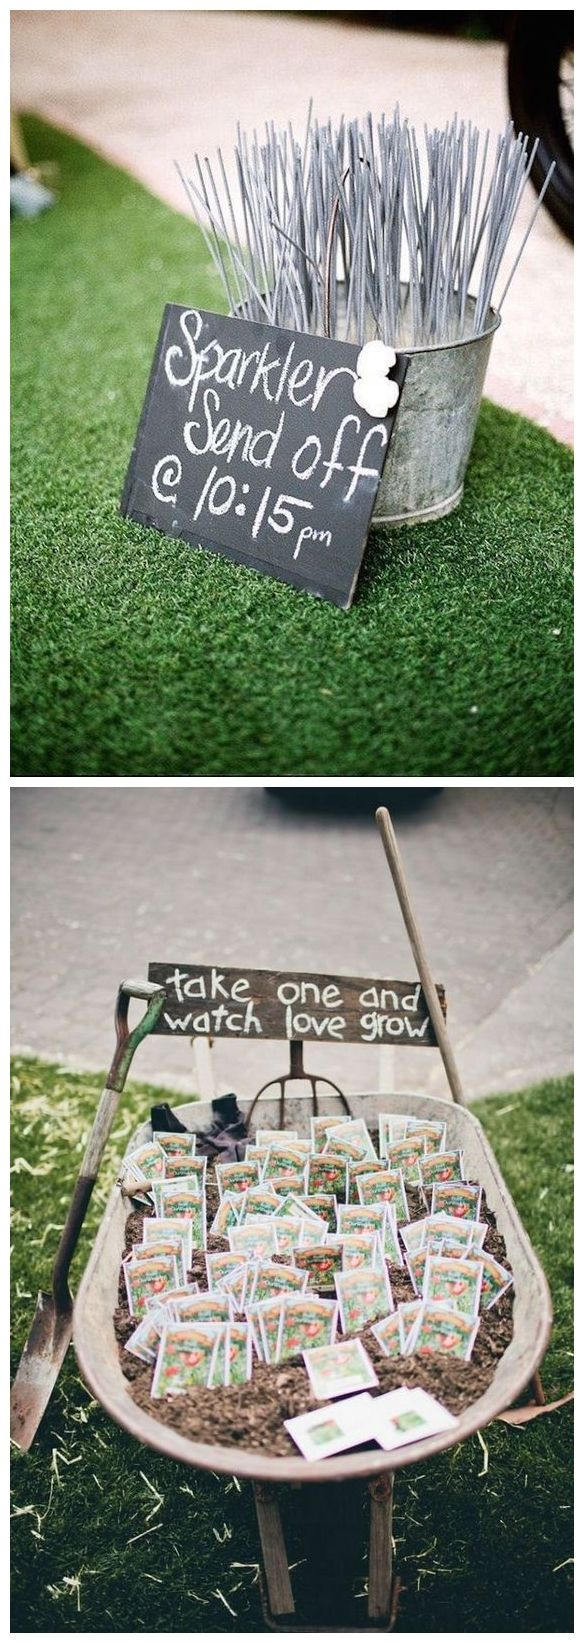 Yard wedding decoration ideas  Top  Outdoor Backyard Garden Wedding Ideas  Mariage  Pinterest